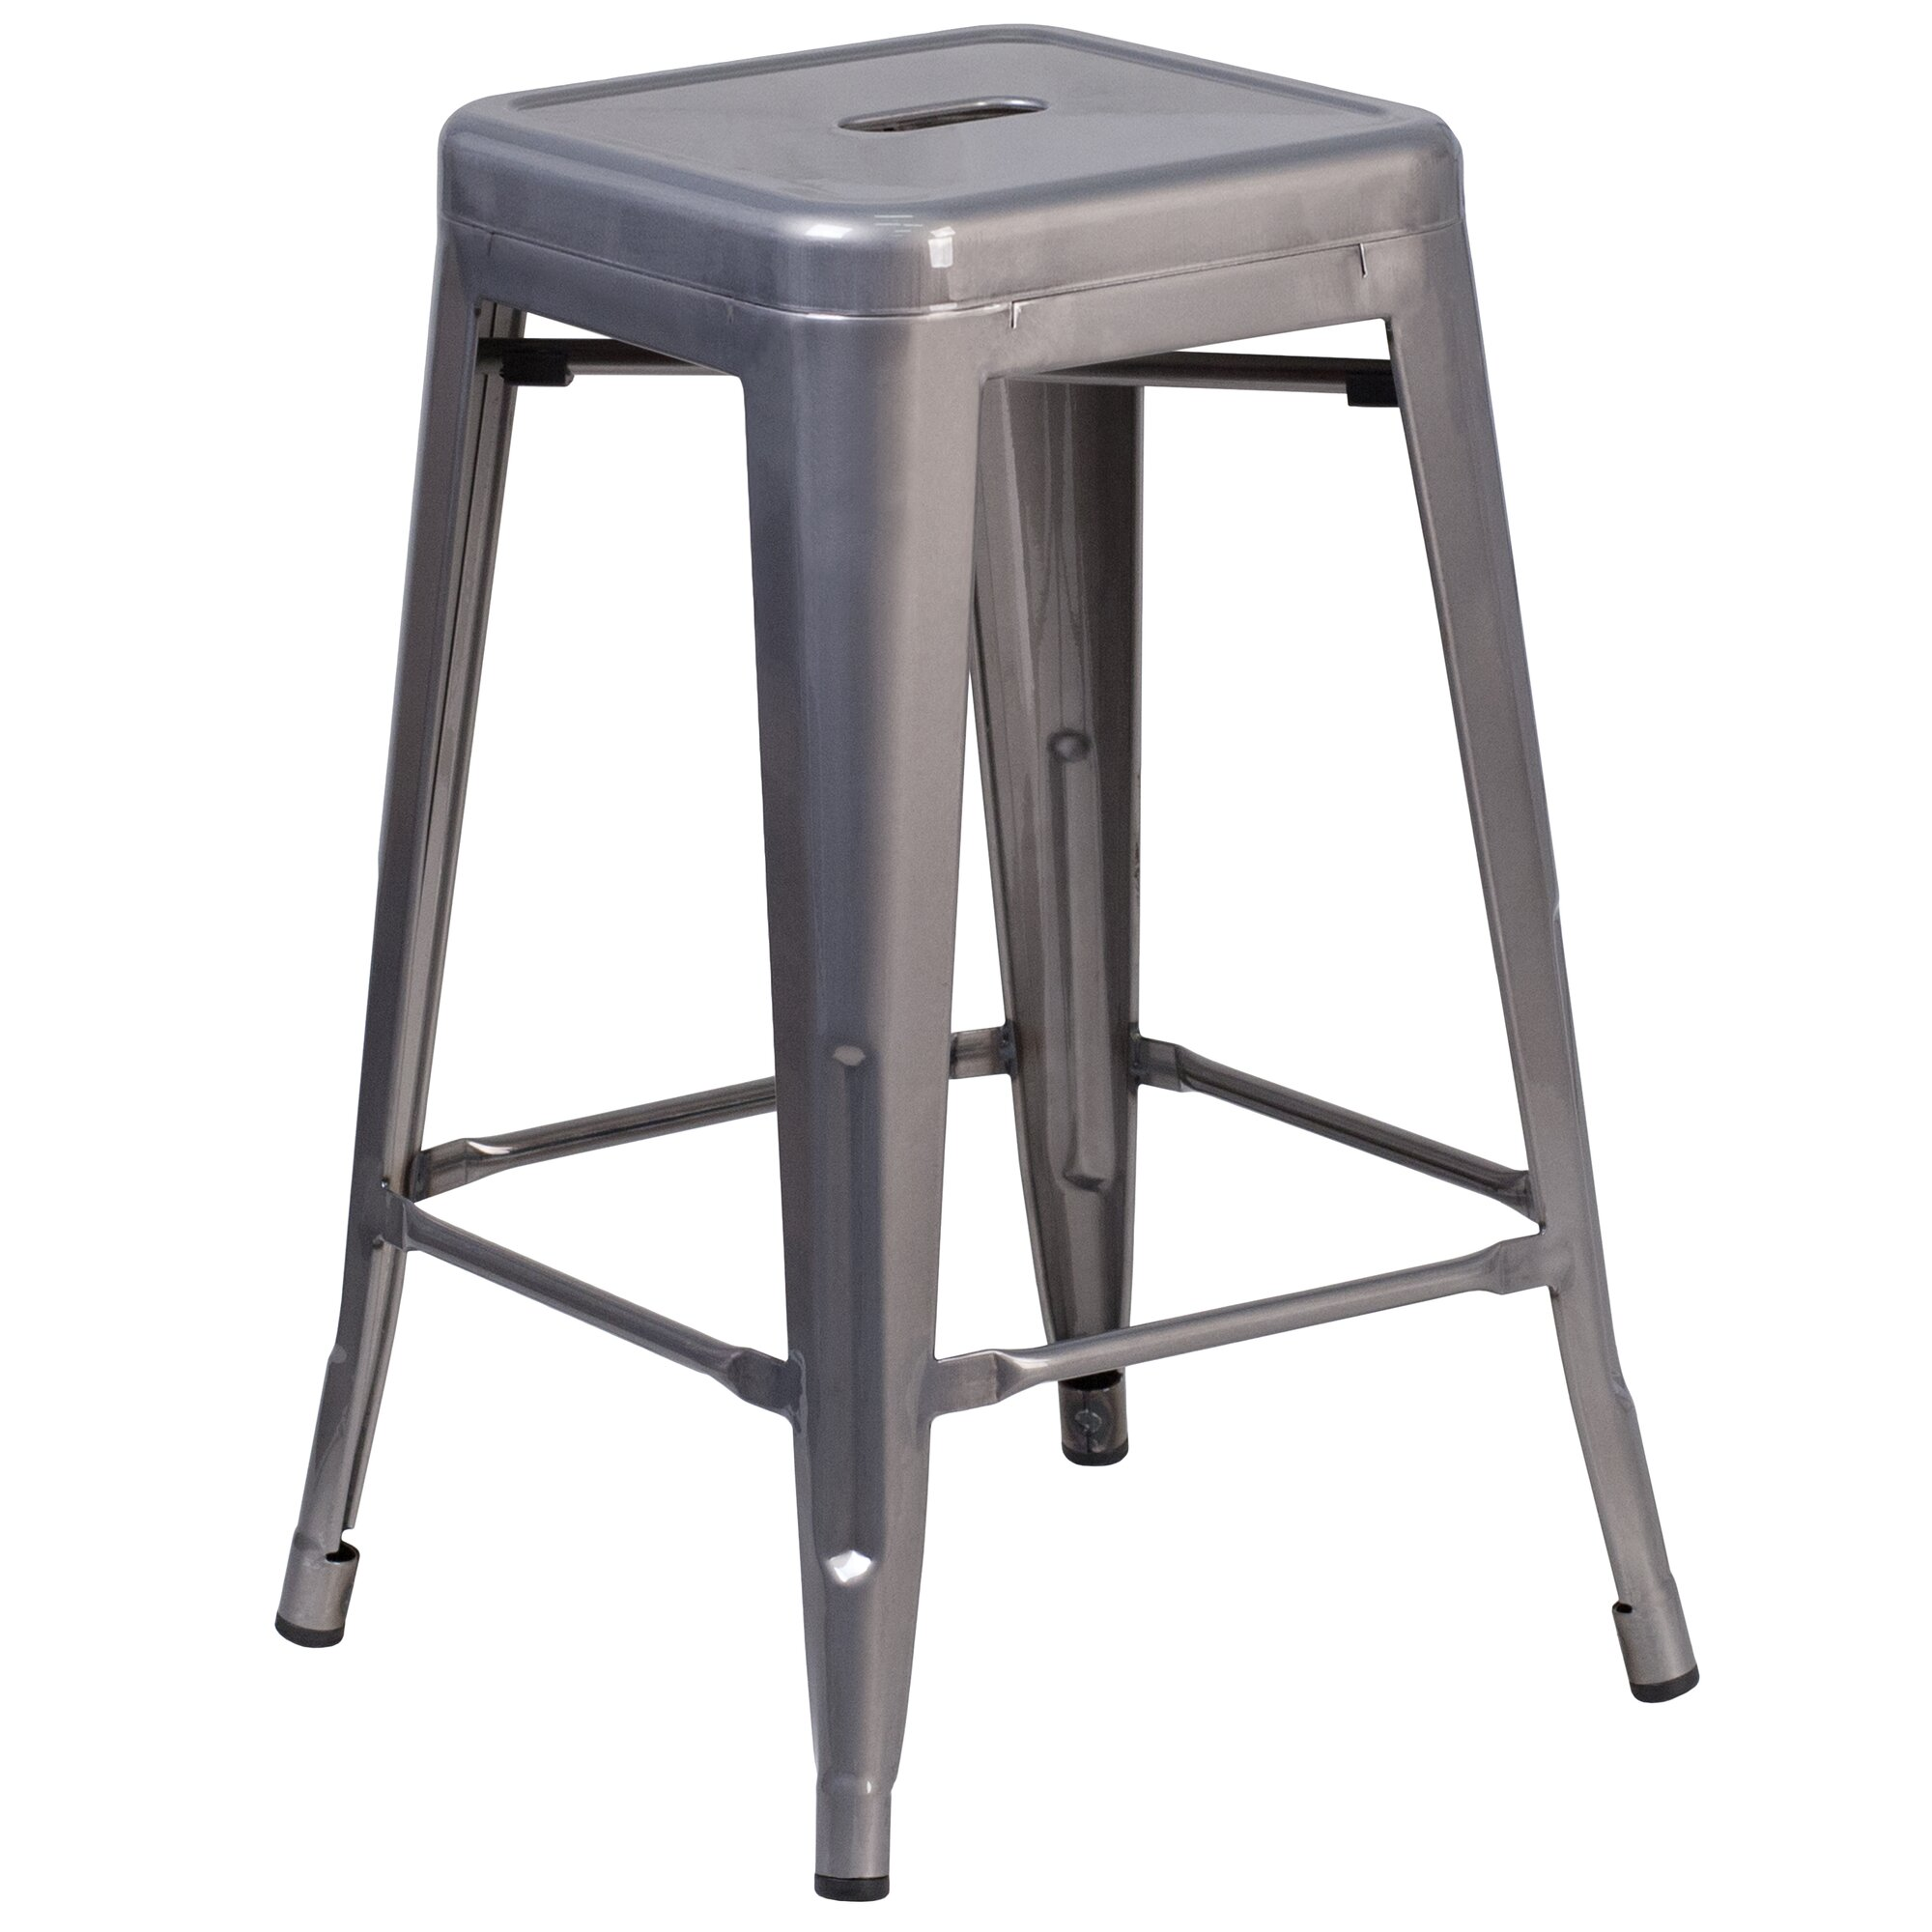 Williston Forge Frank Backless Metal 24 25 Quot Bar Stool